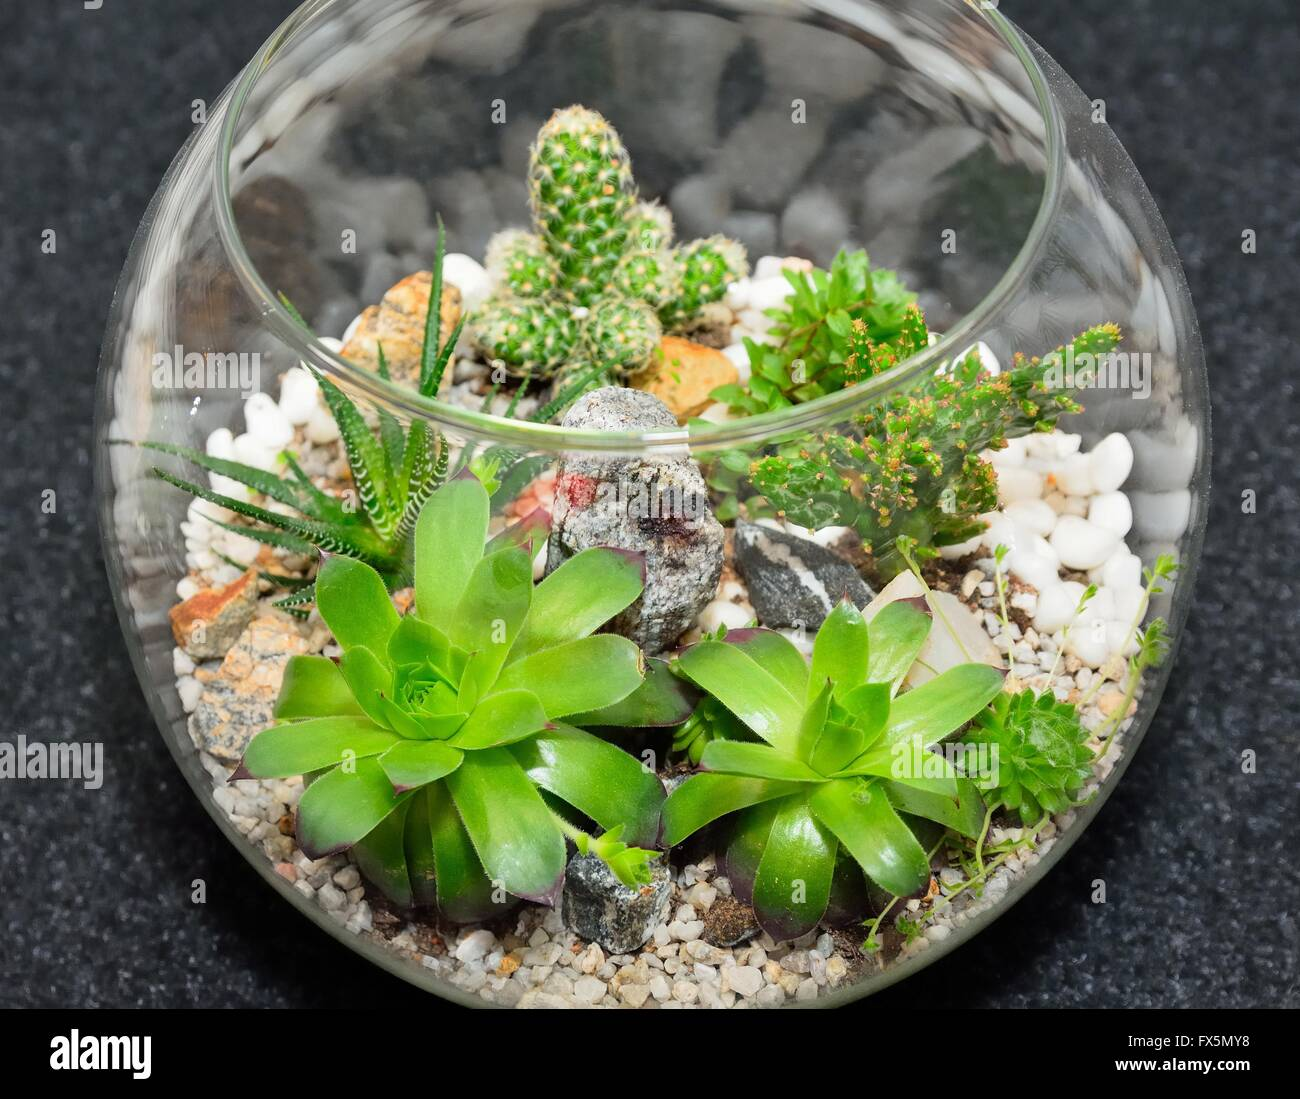 Table top indoor decorative miniature garden in clear glass bubble table top indoor decorative miniature garden in clear glass bubble with cactuses and succulents decorative glass vase with succ reviewsmspy